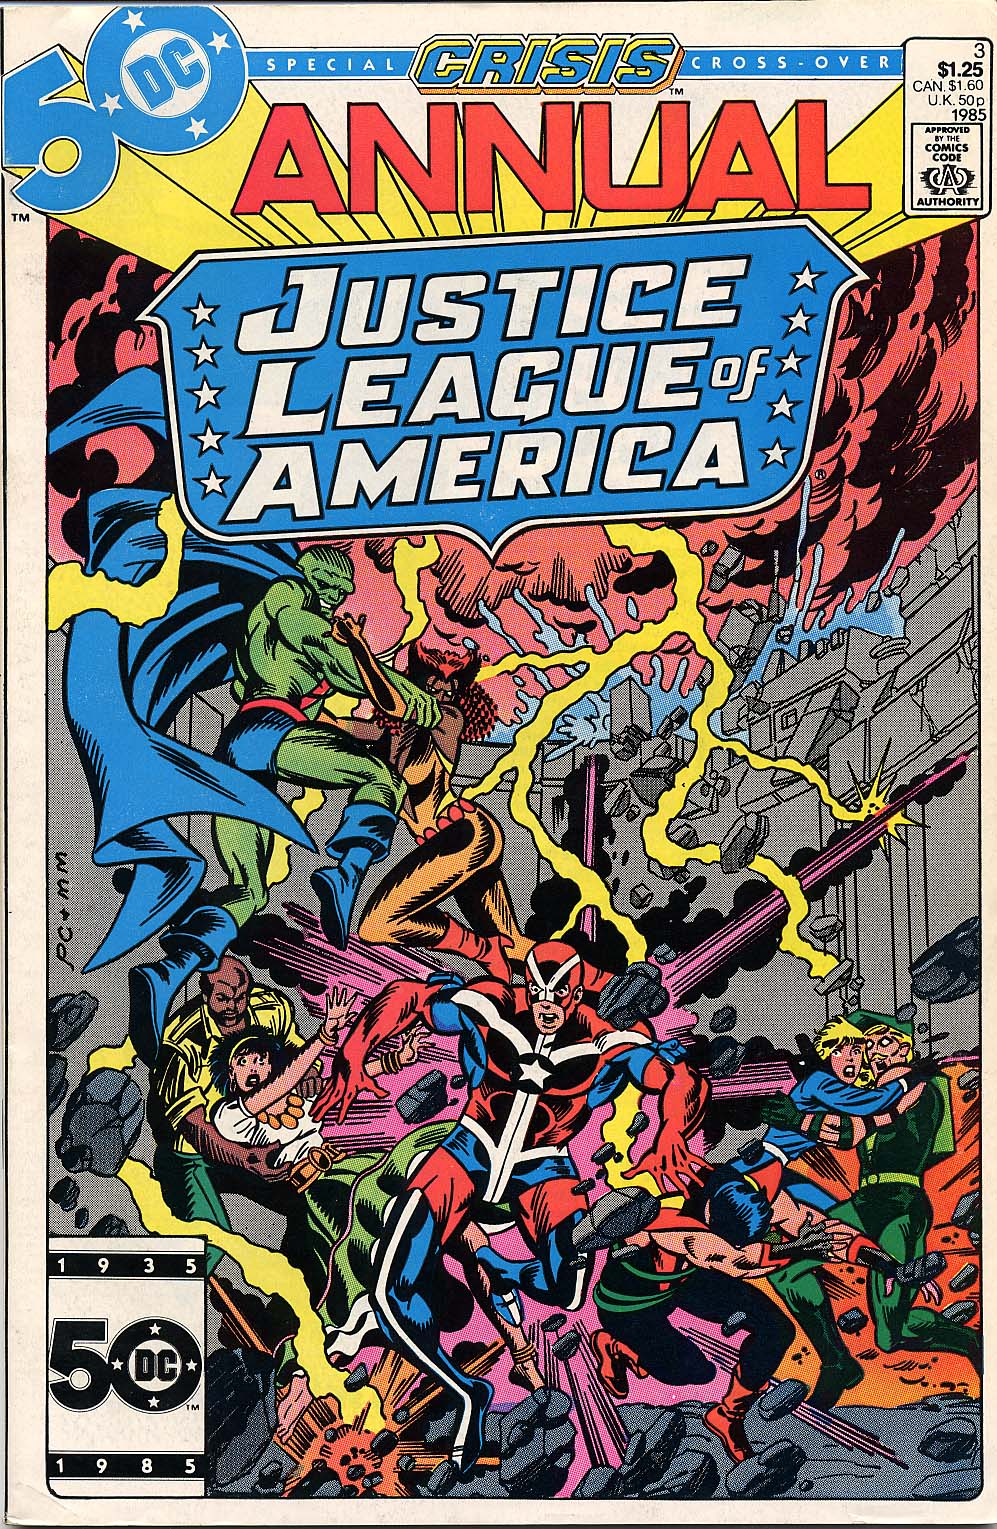 Justice League of America Annual Vol 1 3